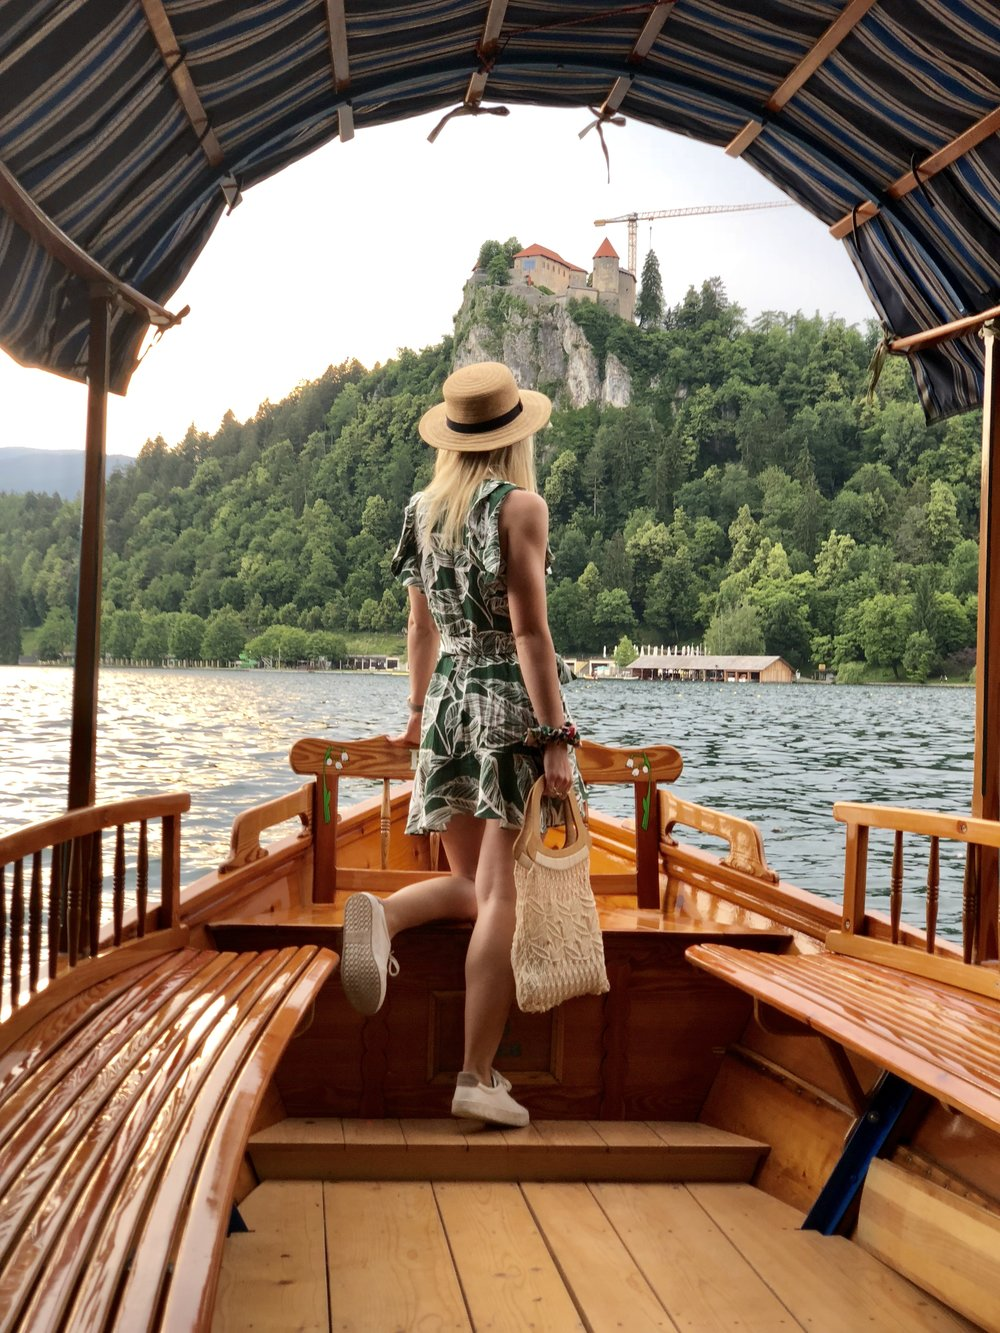 Canoe rides on Lake Bled are a must. The closer you can get to the actual island, the better.  From there, you can park your canoe and walk the 100 steps to the top!